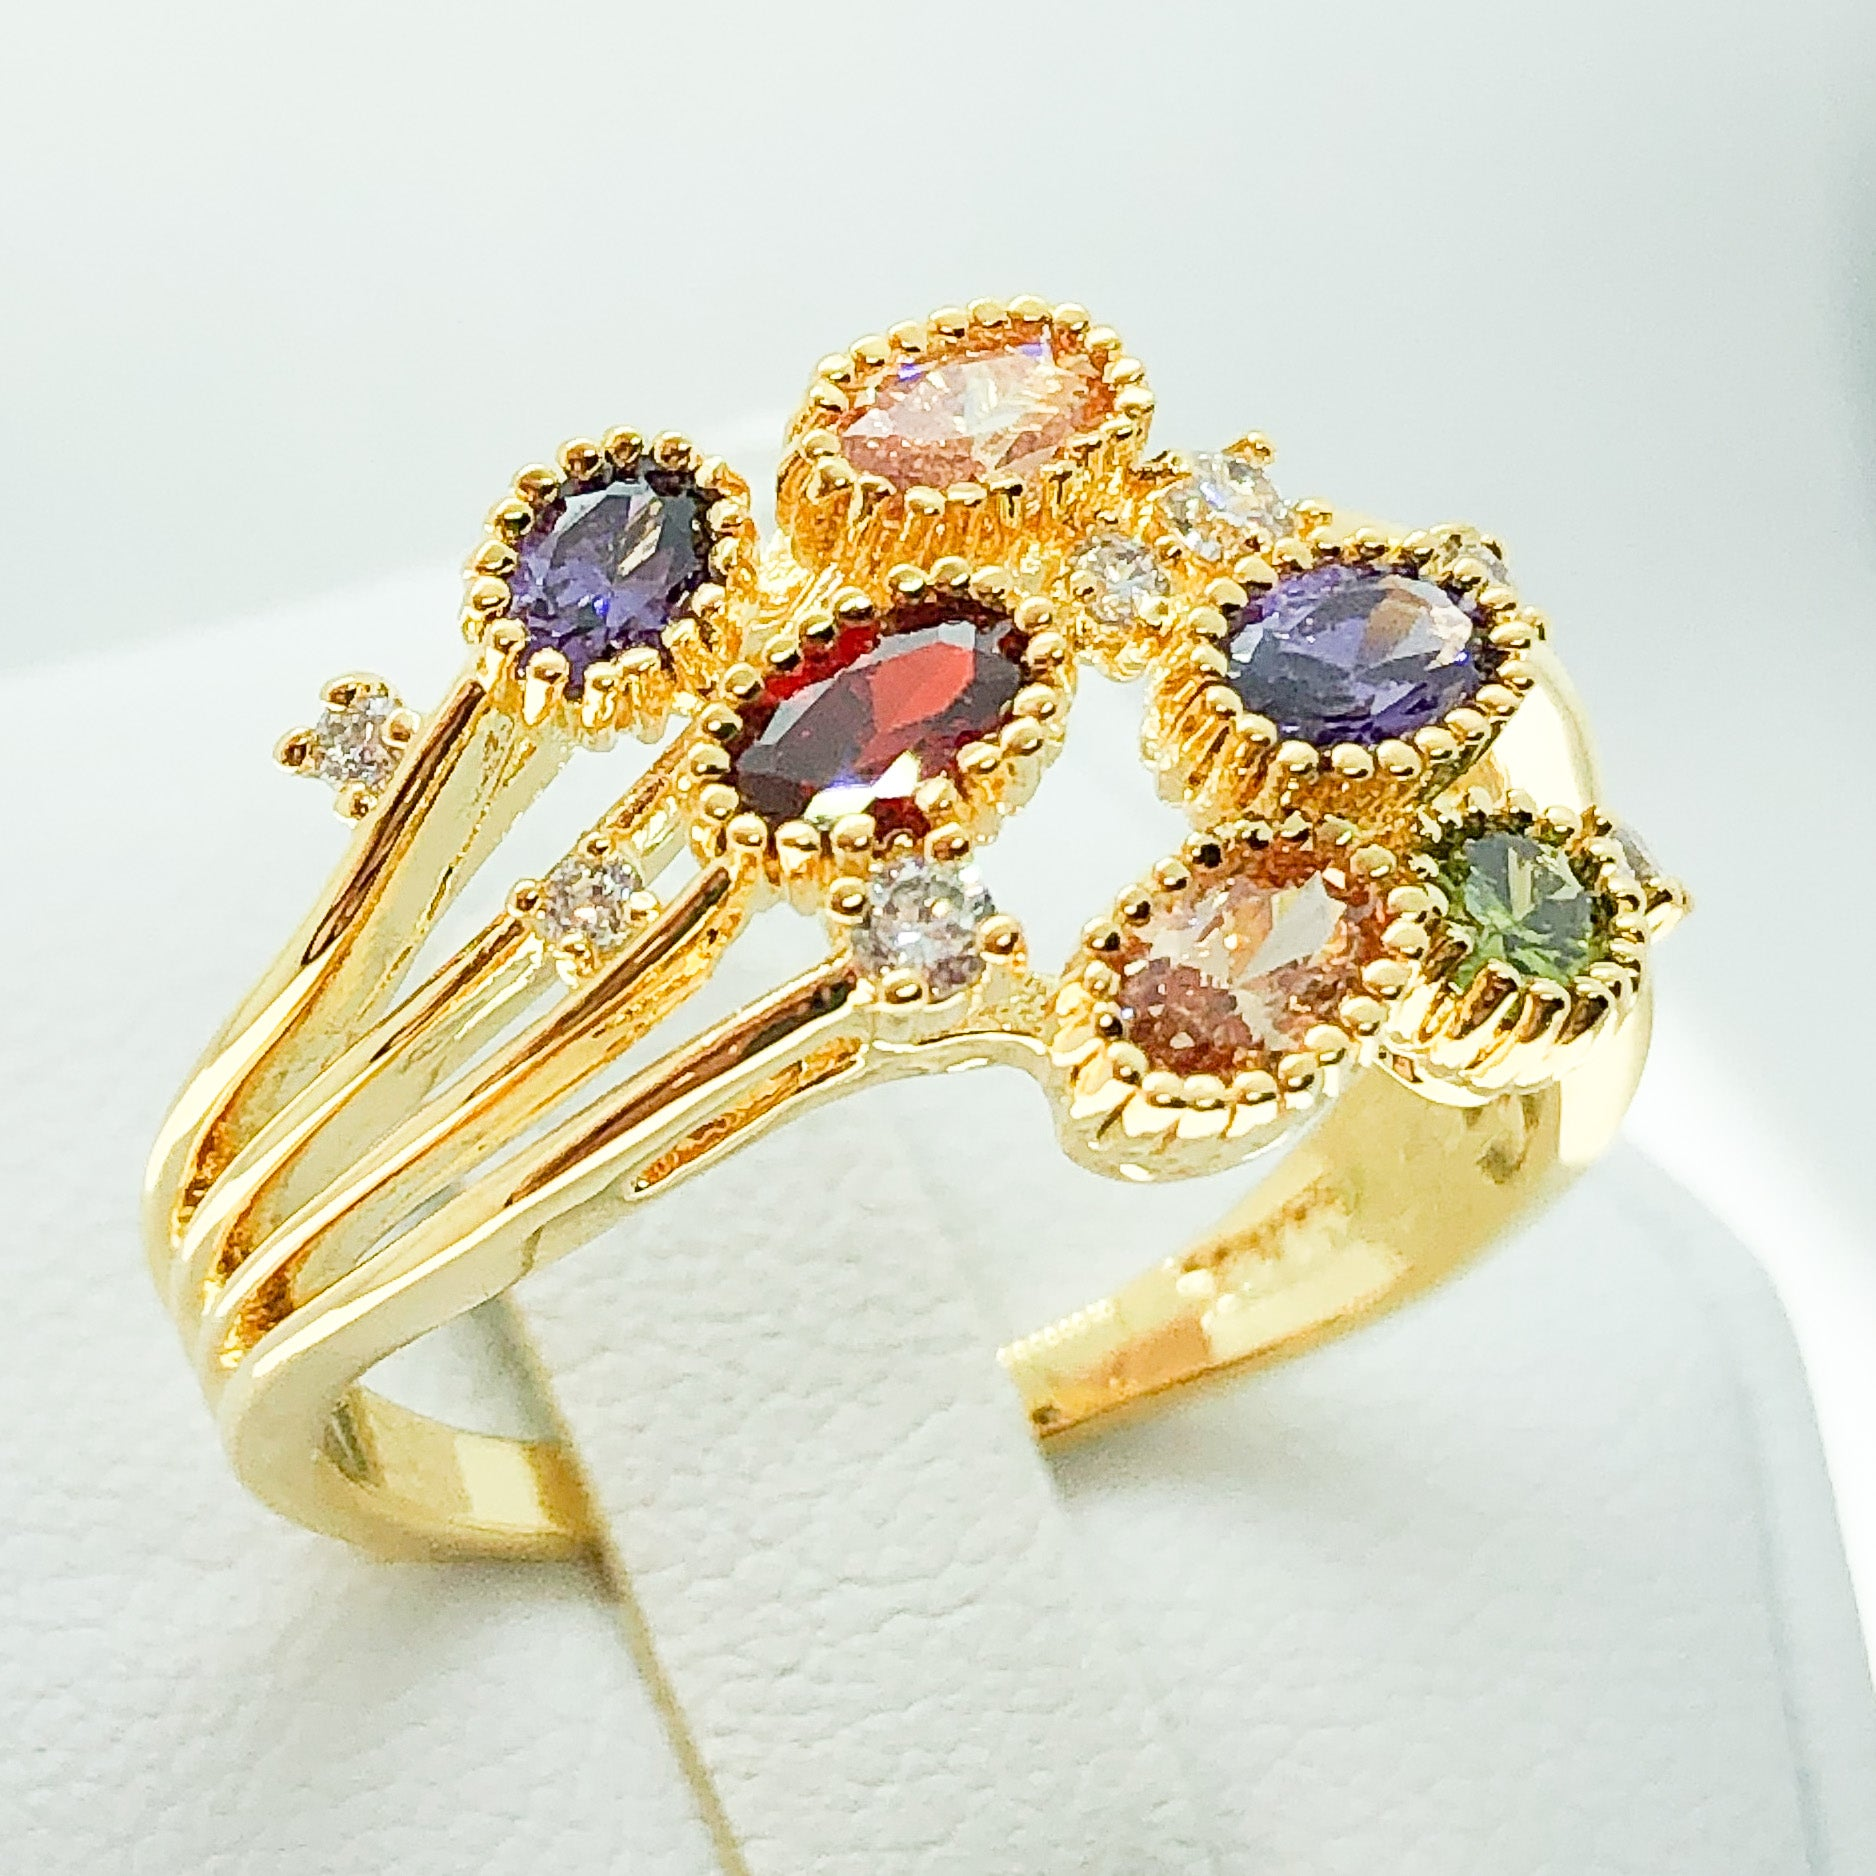 ID:R6976 Women 18K Yellow Gold GF Fashion Jewelry Comfortable Daily Wear Multi-Birthstones Cocktail Ring